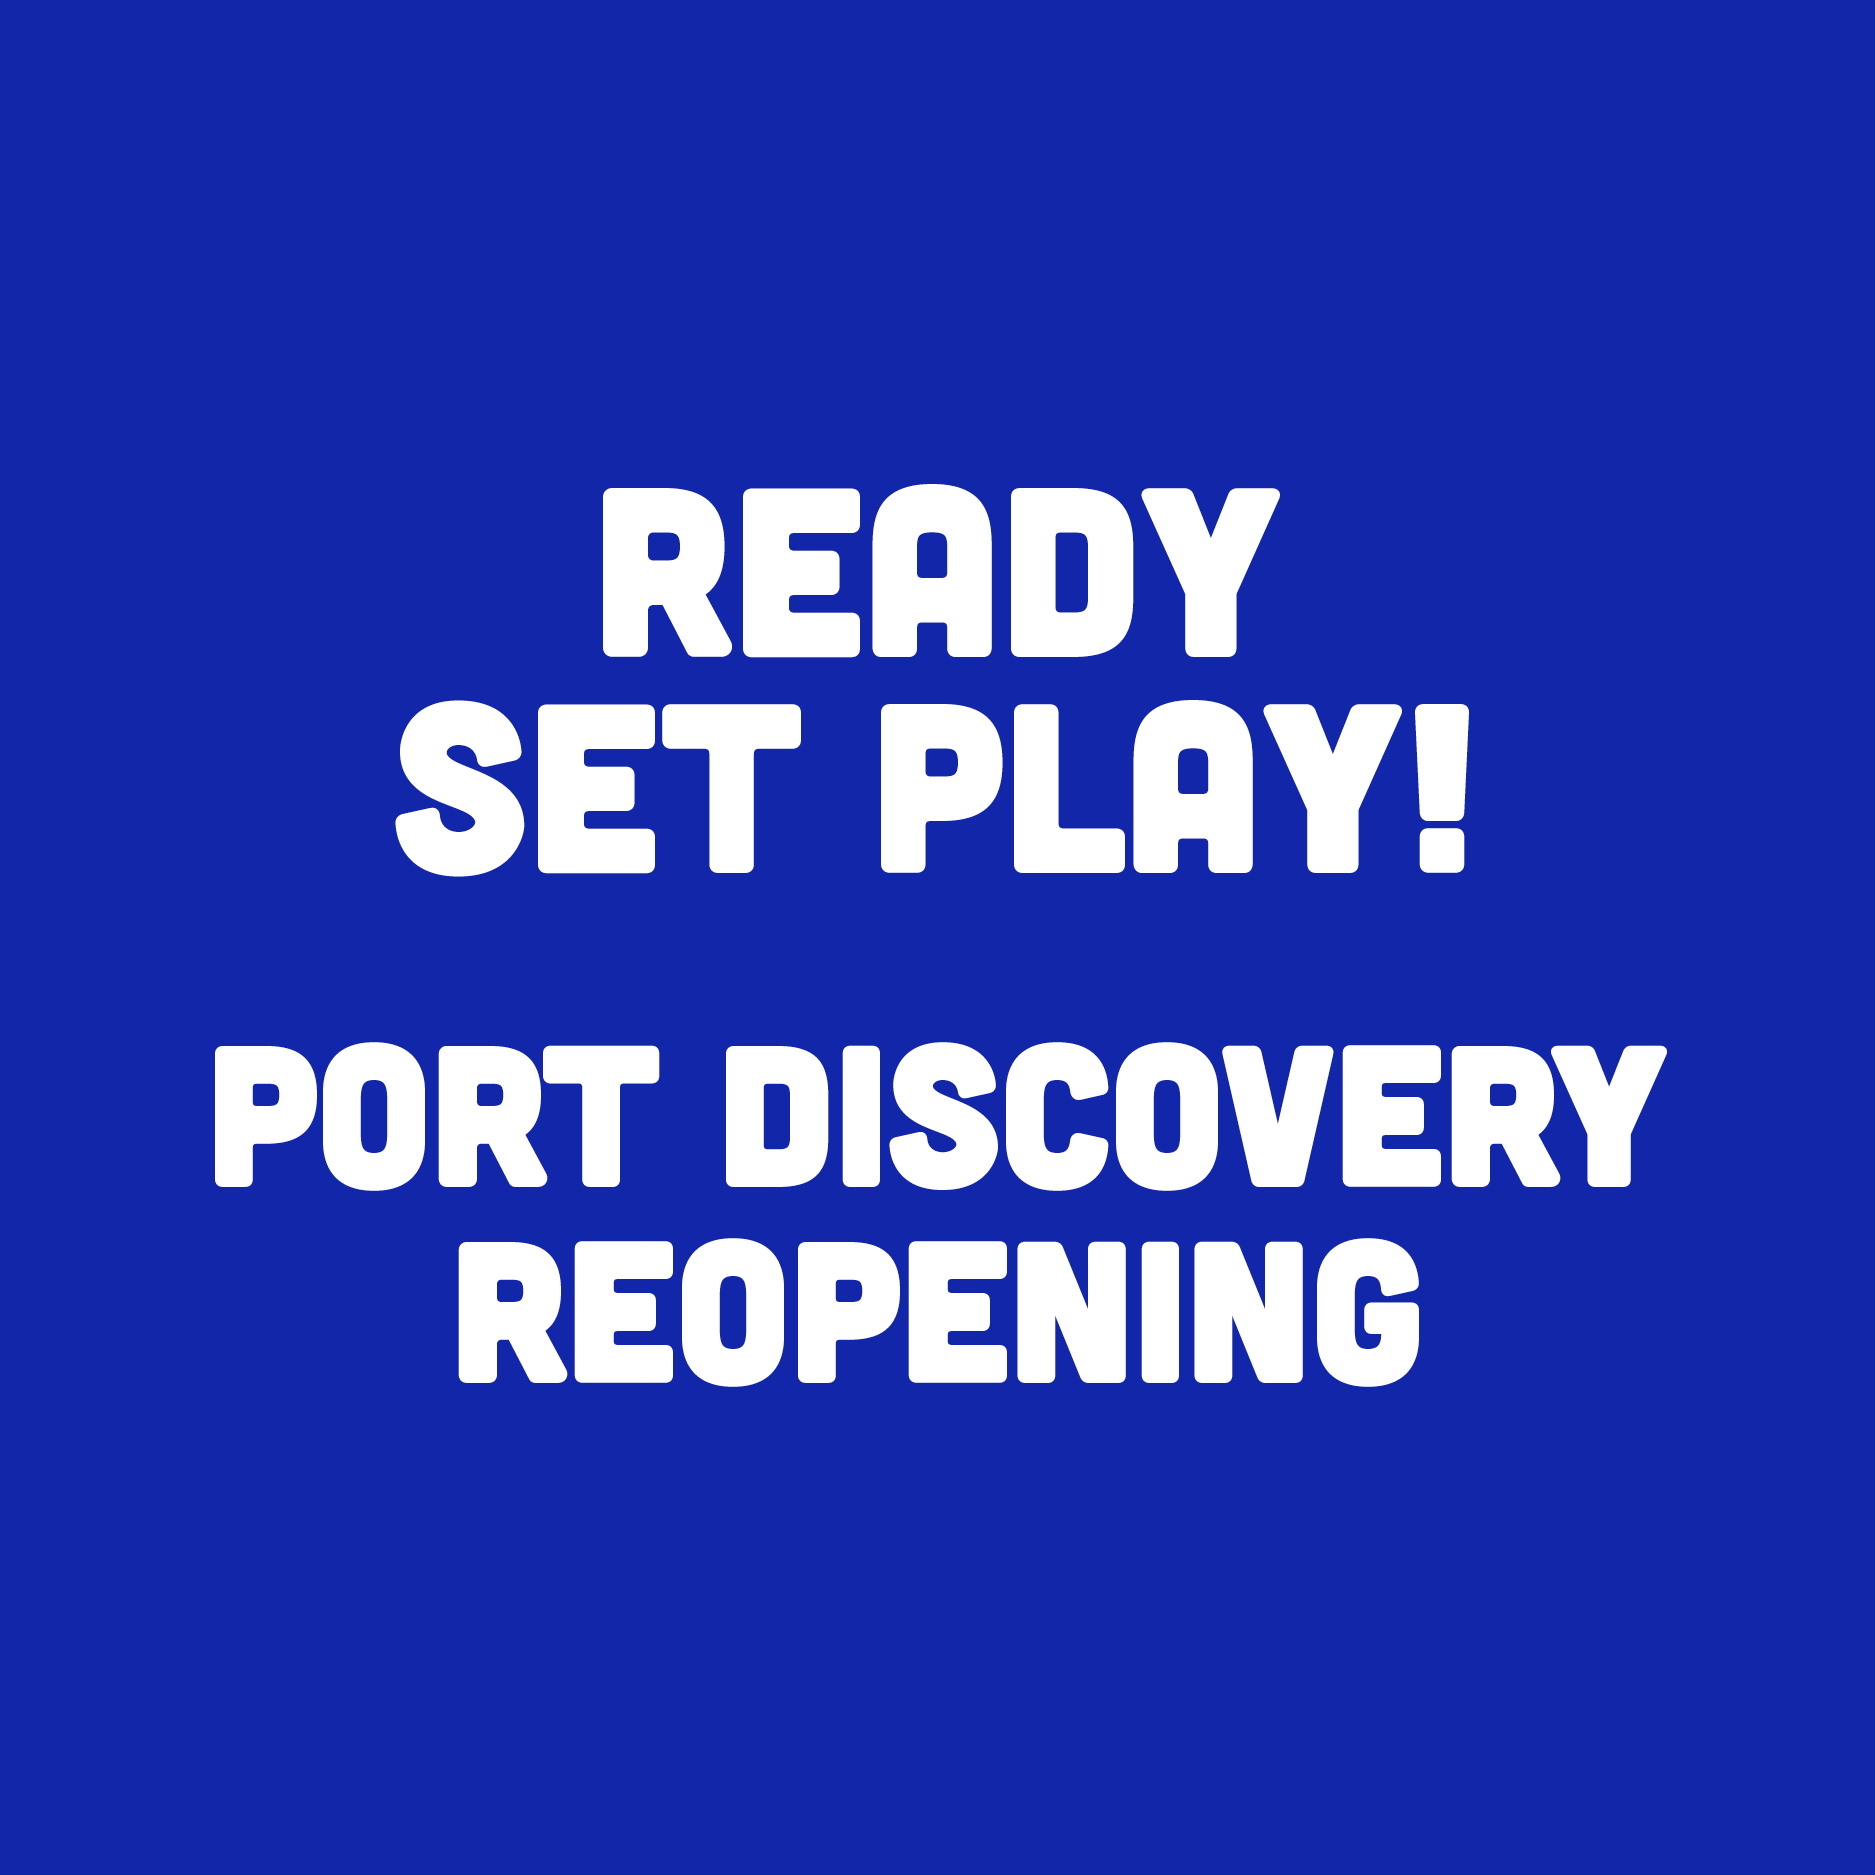 Ready, Set, Play! Port Discovery Reopening October 10 & 11 for Members. Reopening October 17 for All. Advanced Tickets Required.